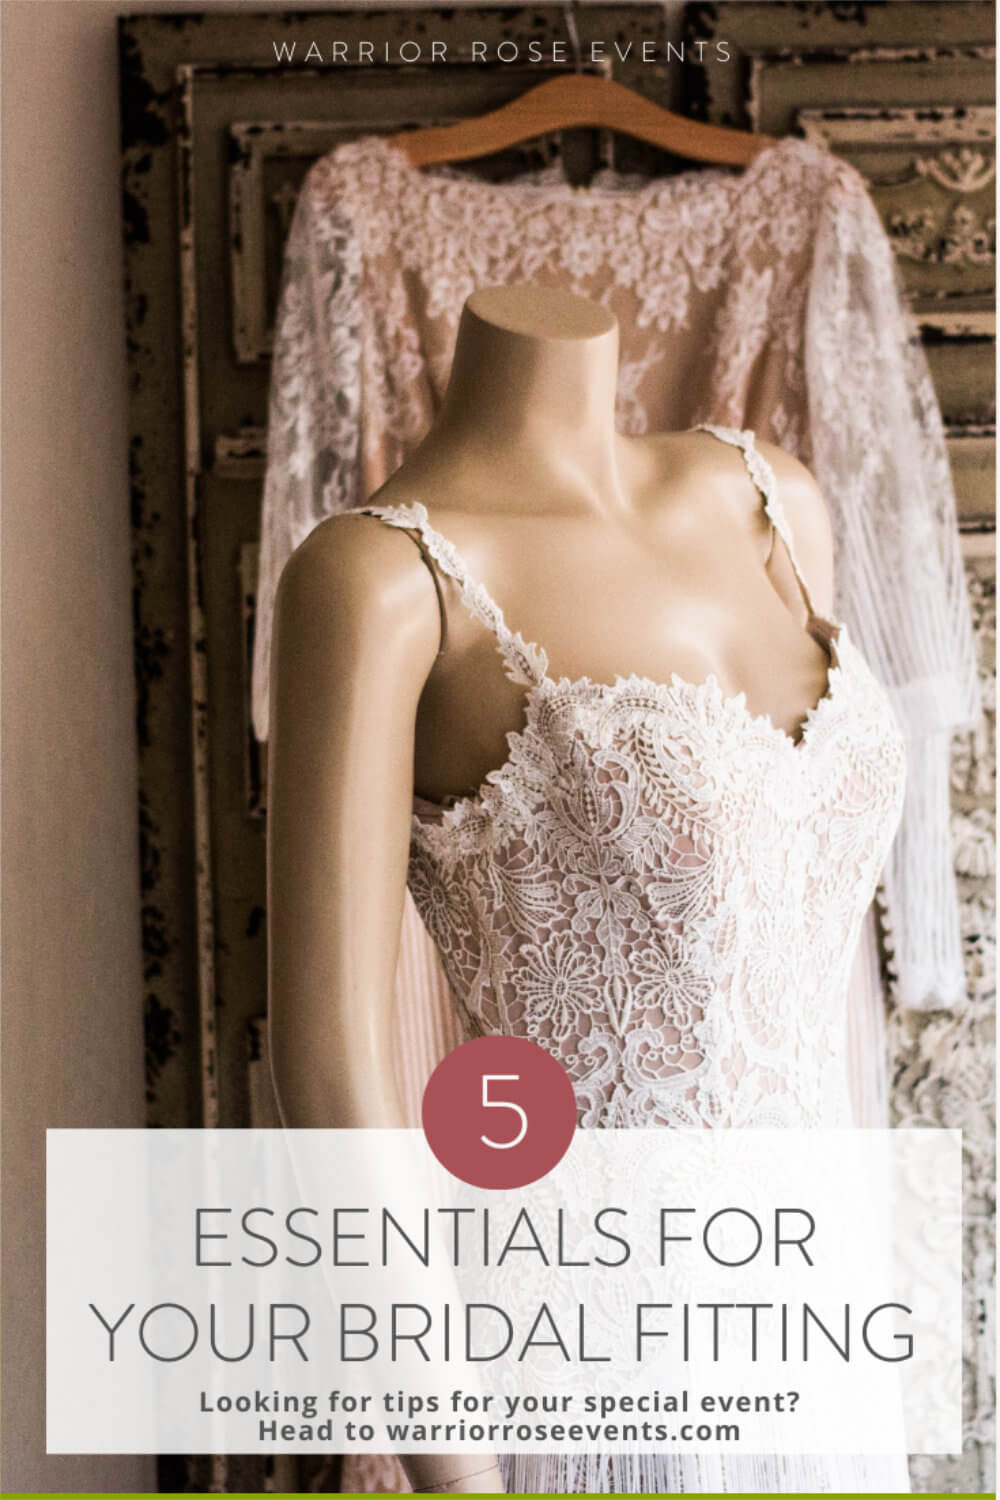 Essentials for Your Bridal Fitting Best Wedding Planning Tips Warrior Rose Events 5